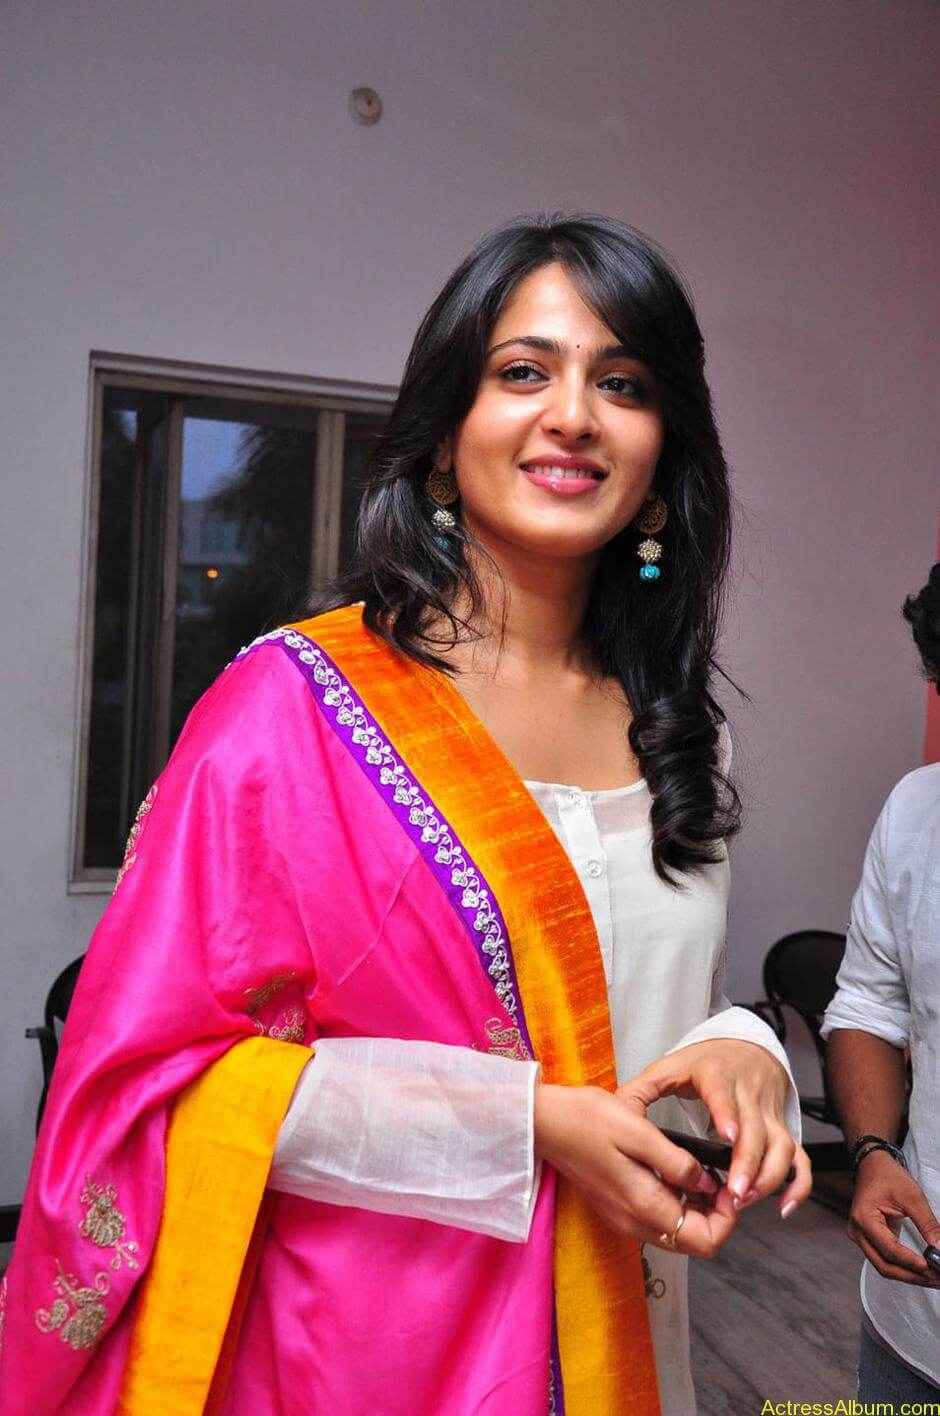 Anushka-Shetty-05-23-2011-Stills-009